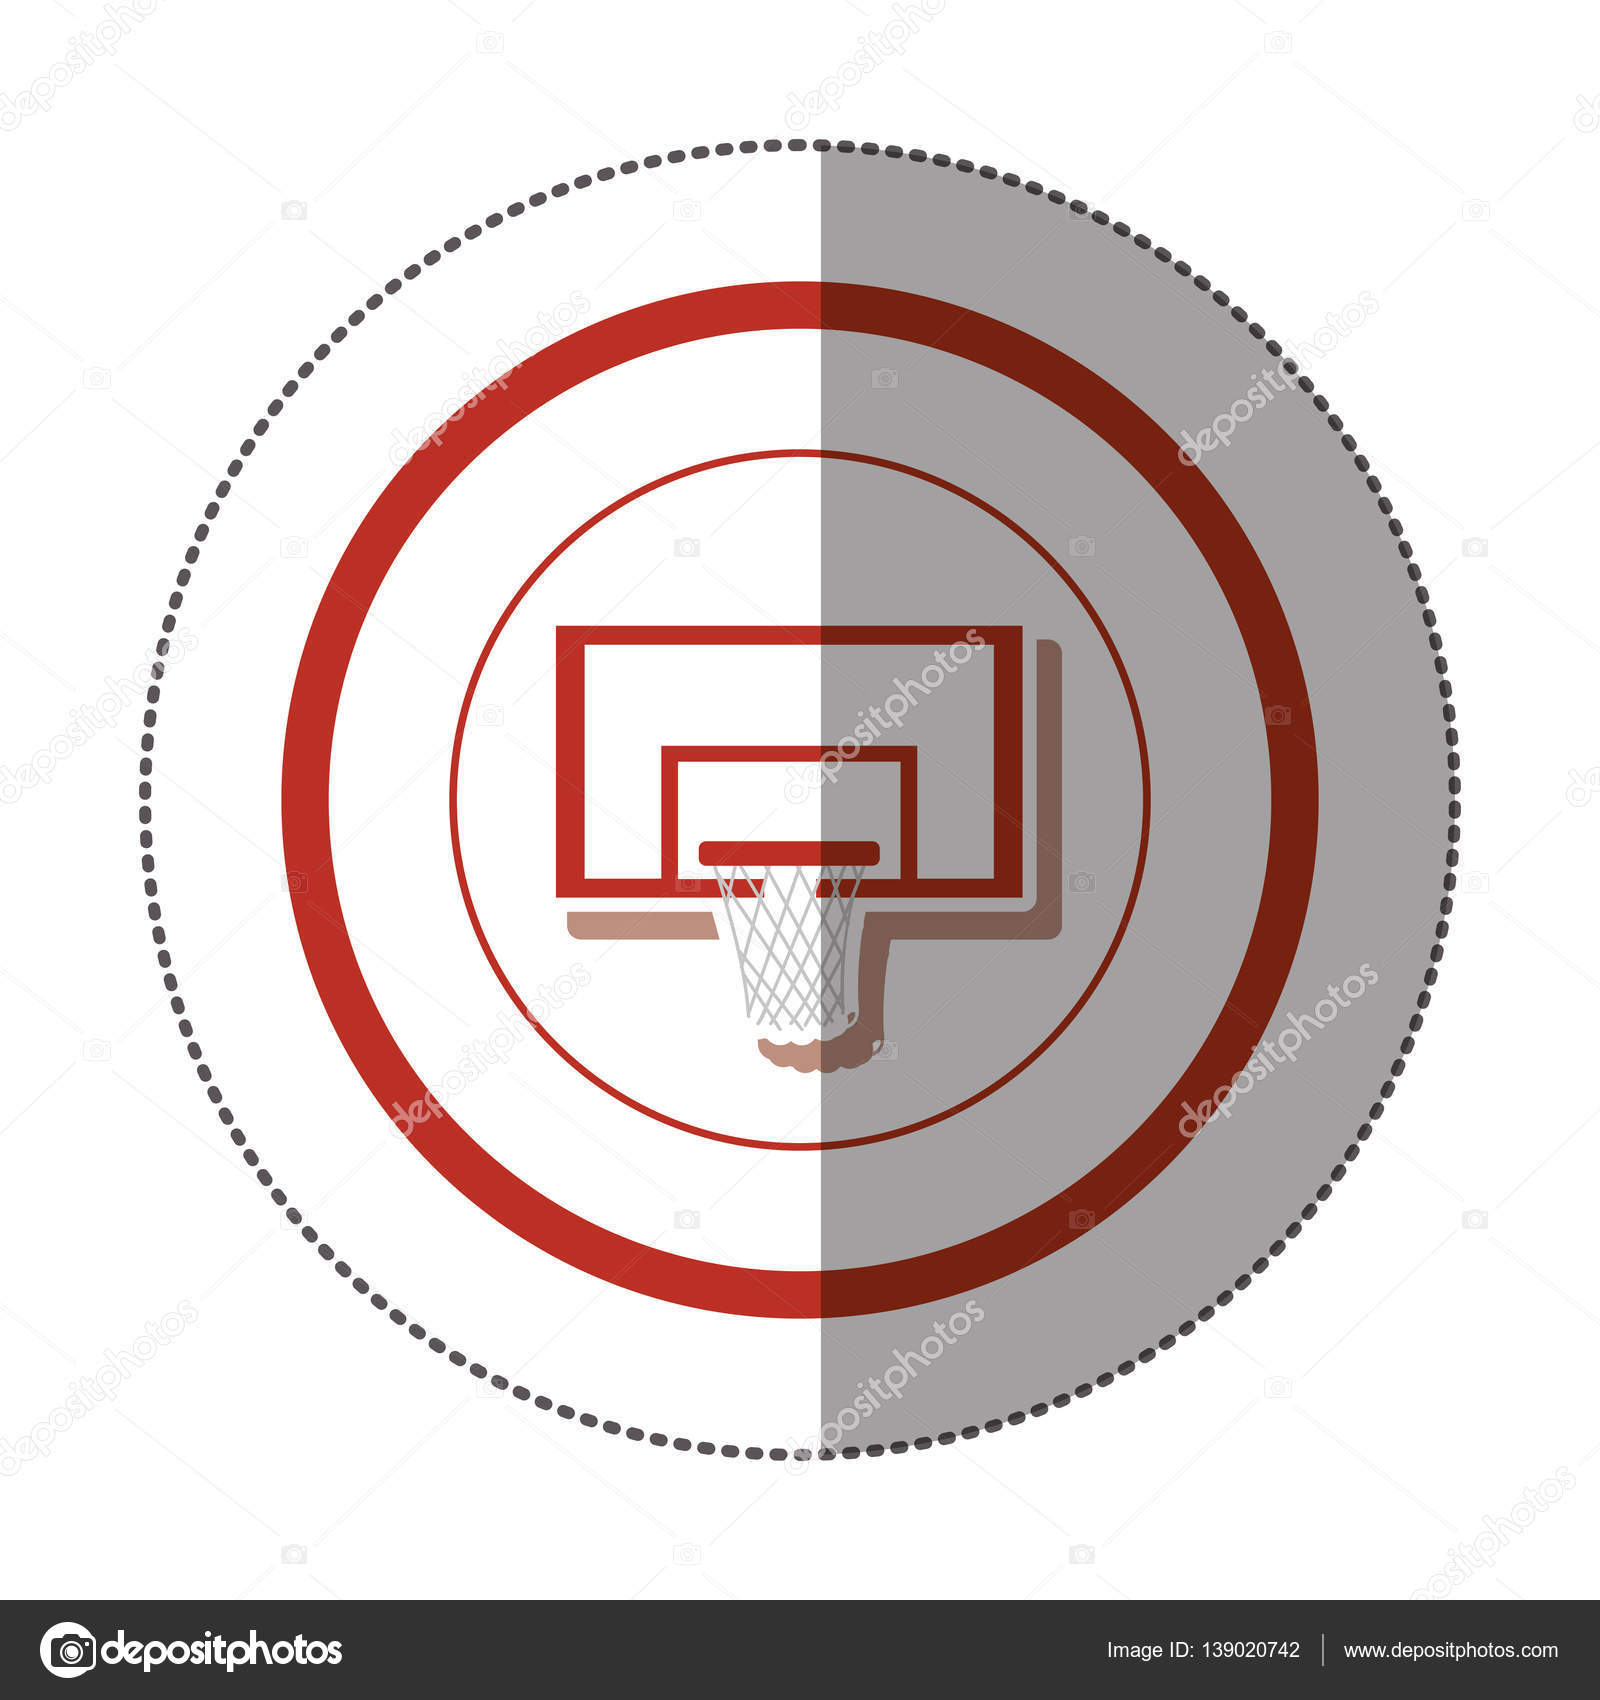 Sticker With Circular Shape Of Colorful Square Basketball Hoop Diagram Stock Vector